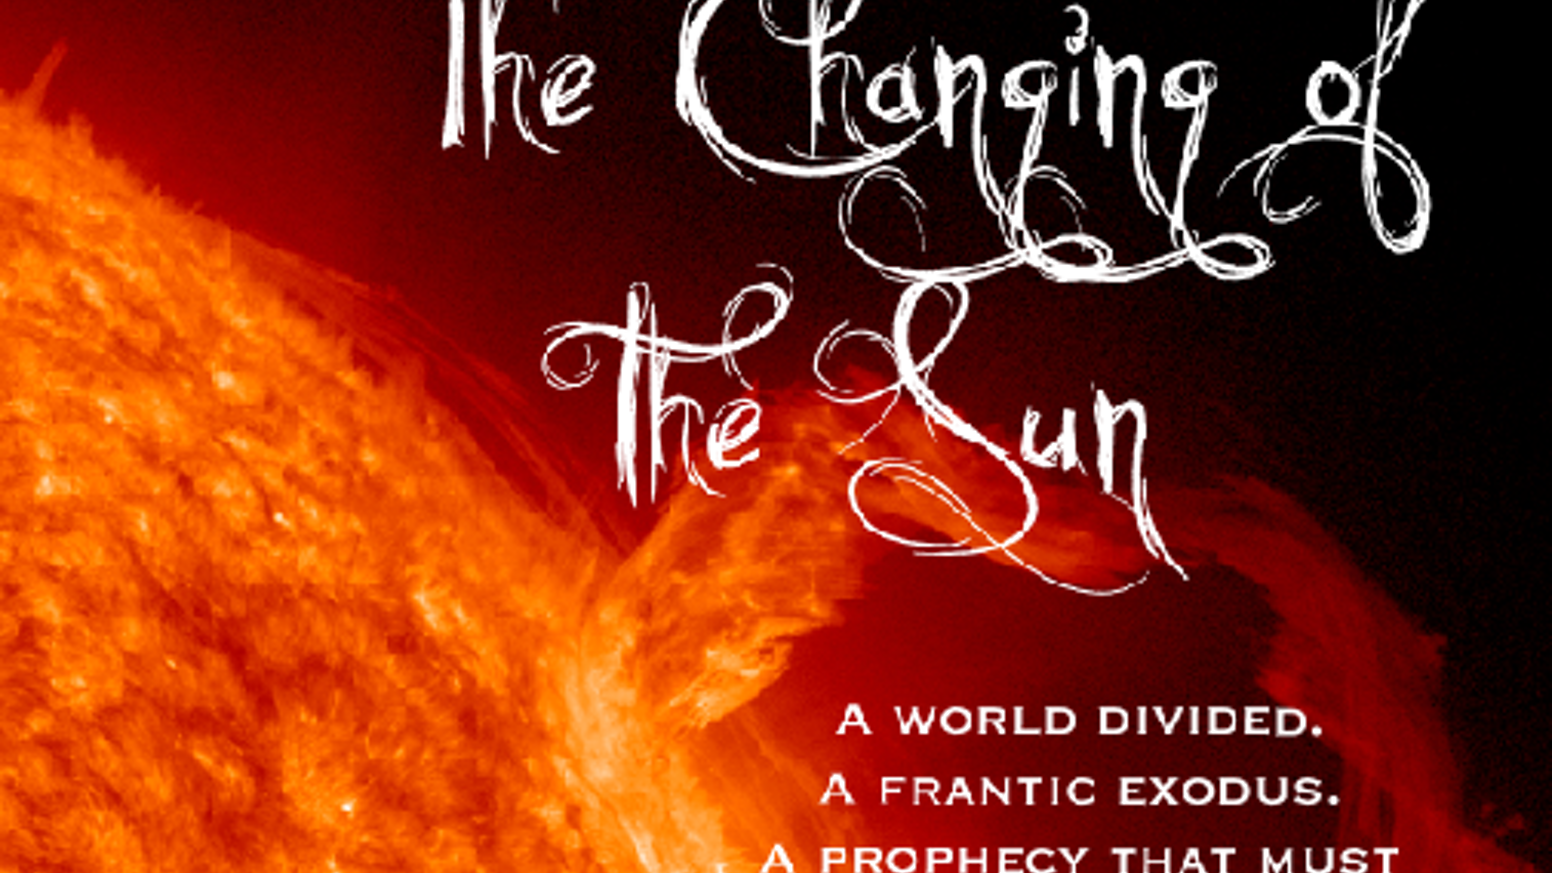 Help publish my debut novel The Changing of the Sun, the first in a science fiction trilogy set on an alien world.